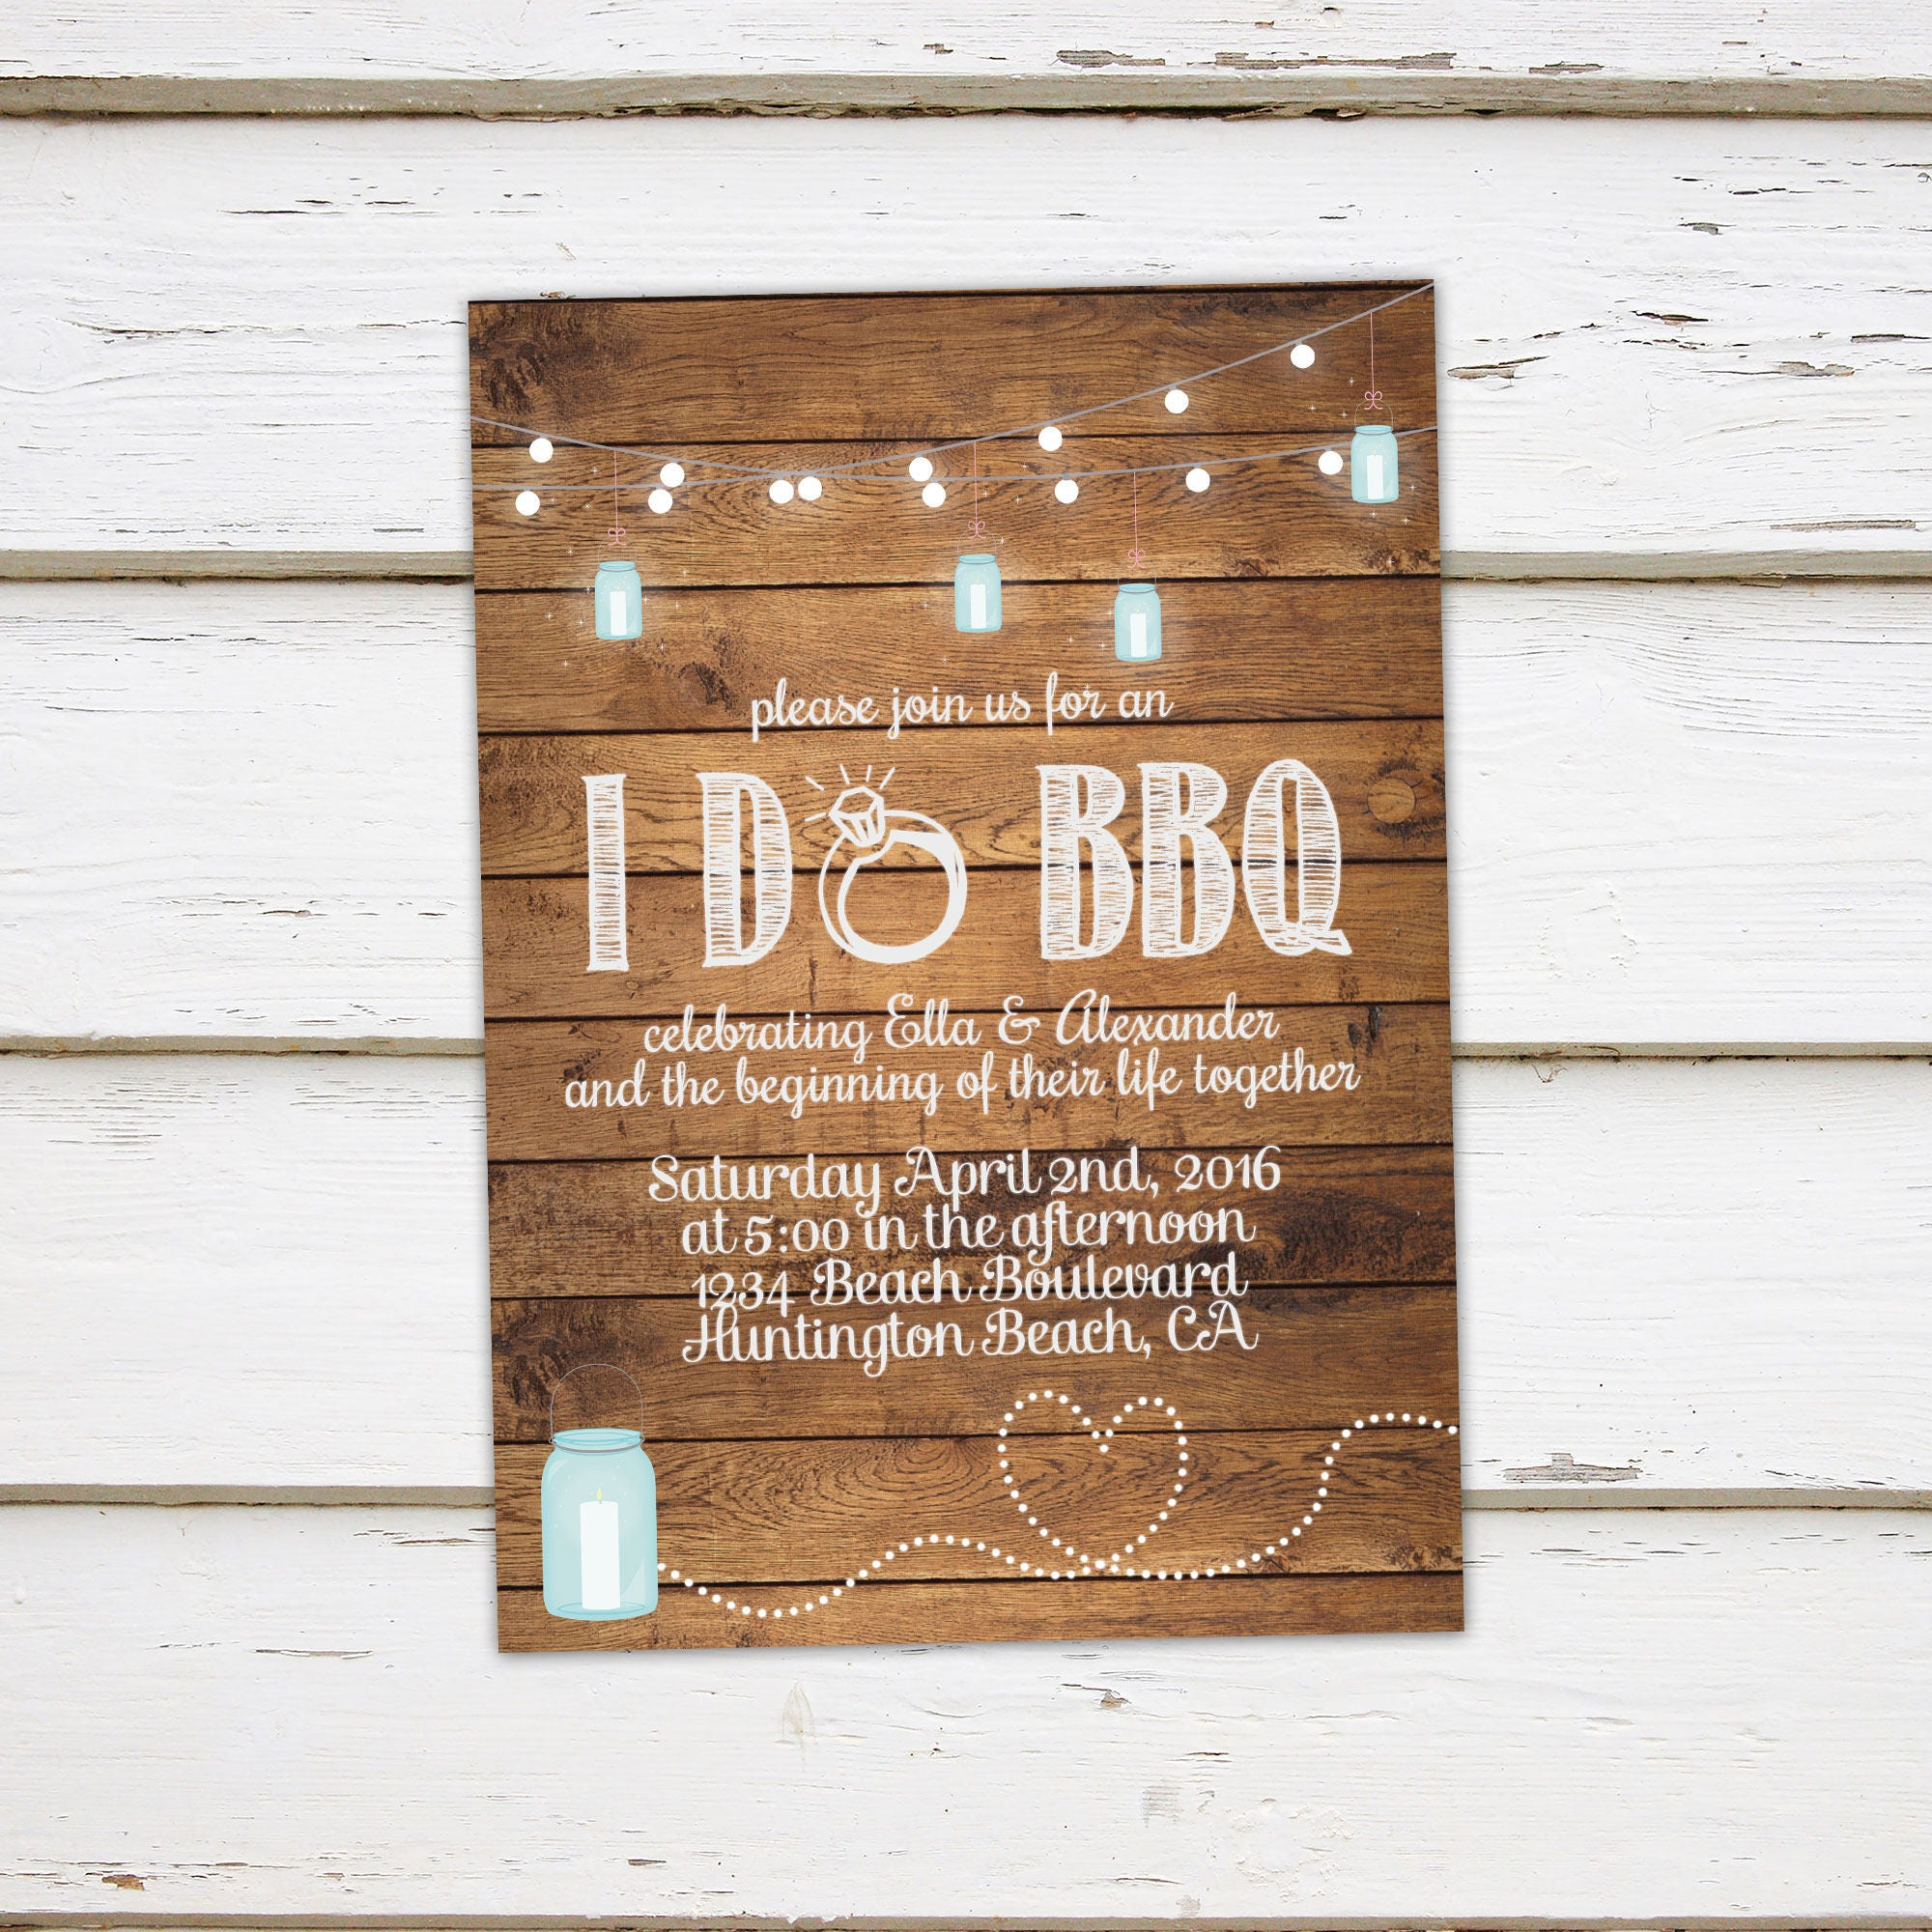 Printable I Do BBQ Invitation Engagement Party Elopement Reception Rustic Wood String Lights Farm Country Eloped MB032